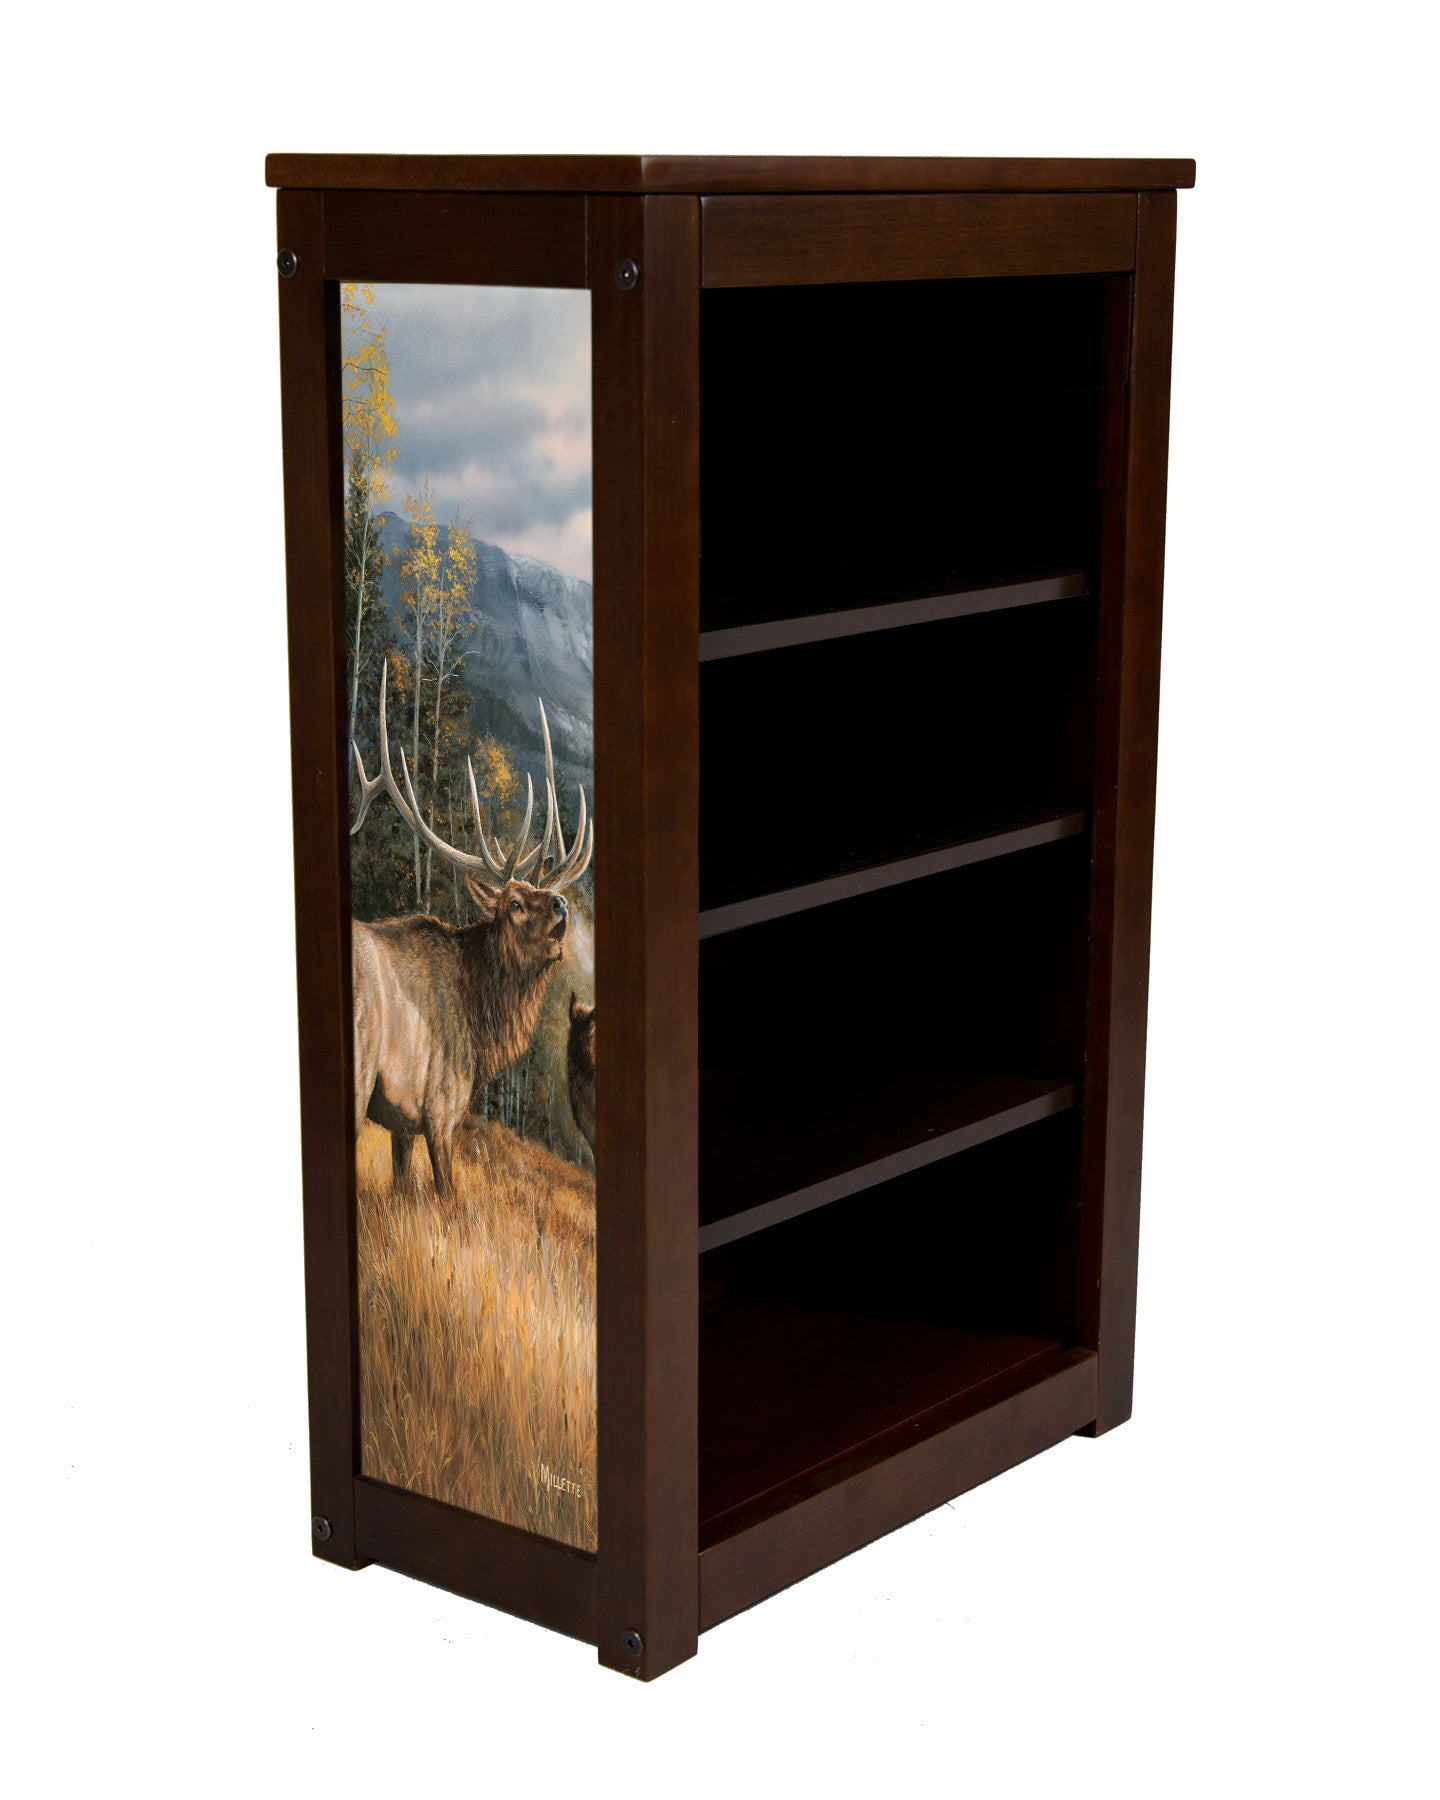 3 shelf book cabinet with elk image